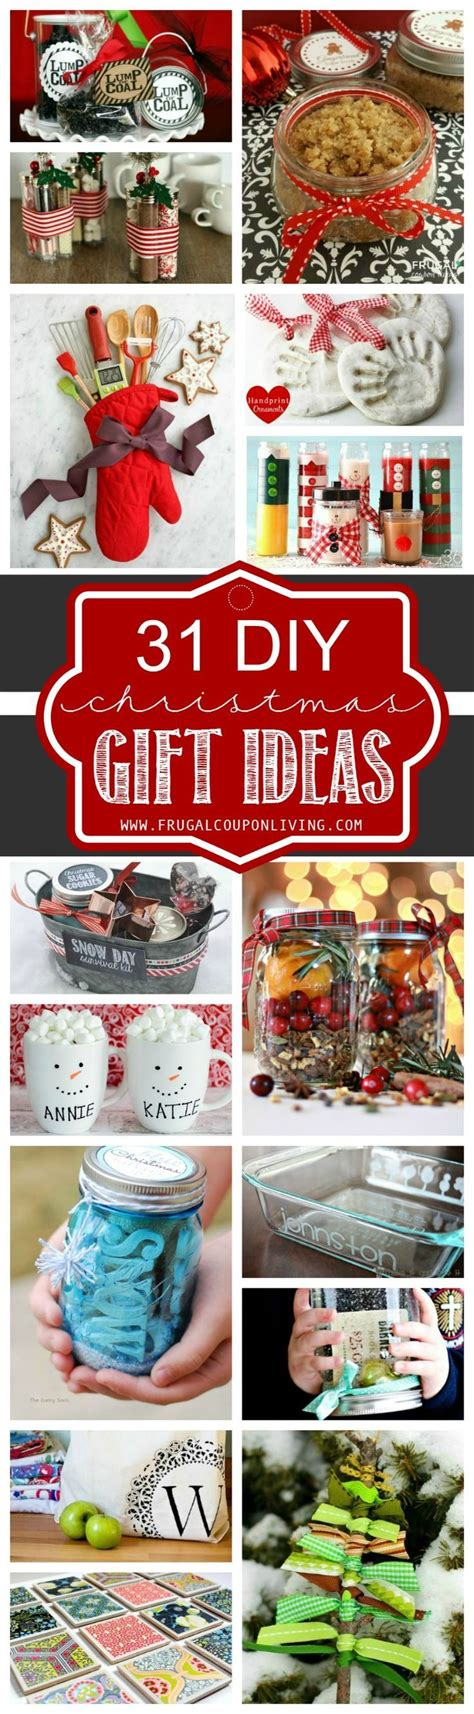 home made decorations for best 25 gifts ideas on easy gifts creative